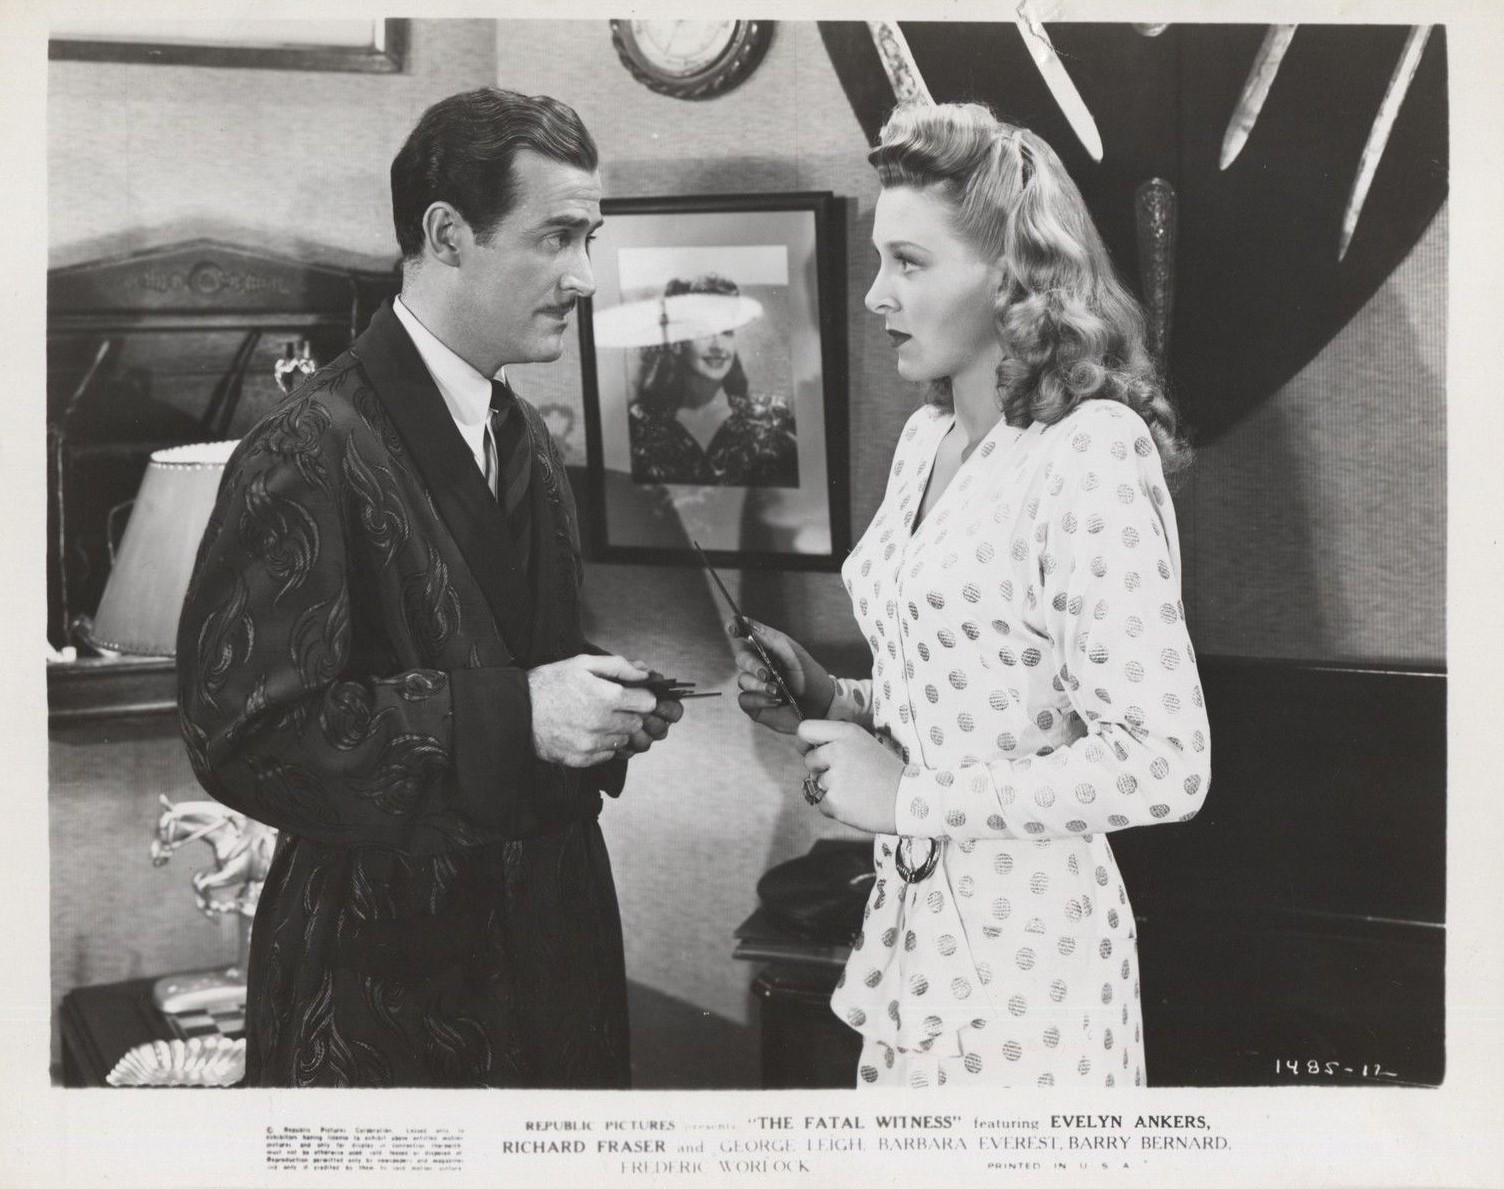 Evelyn Ankers and Richard Fraser in The Fatal Witness (1945)